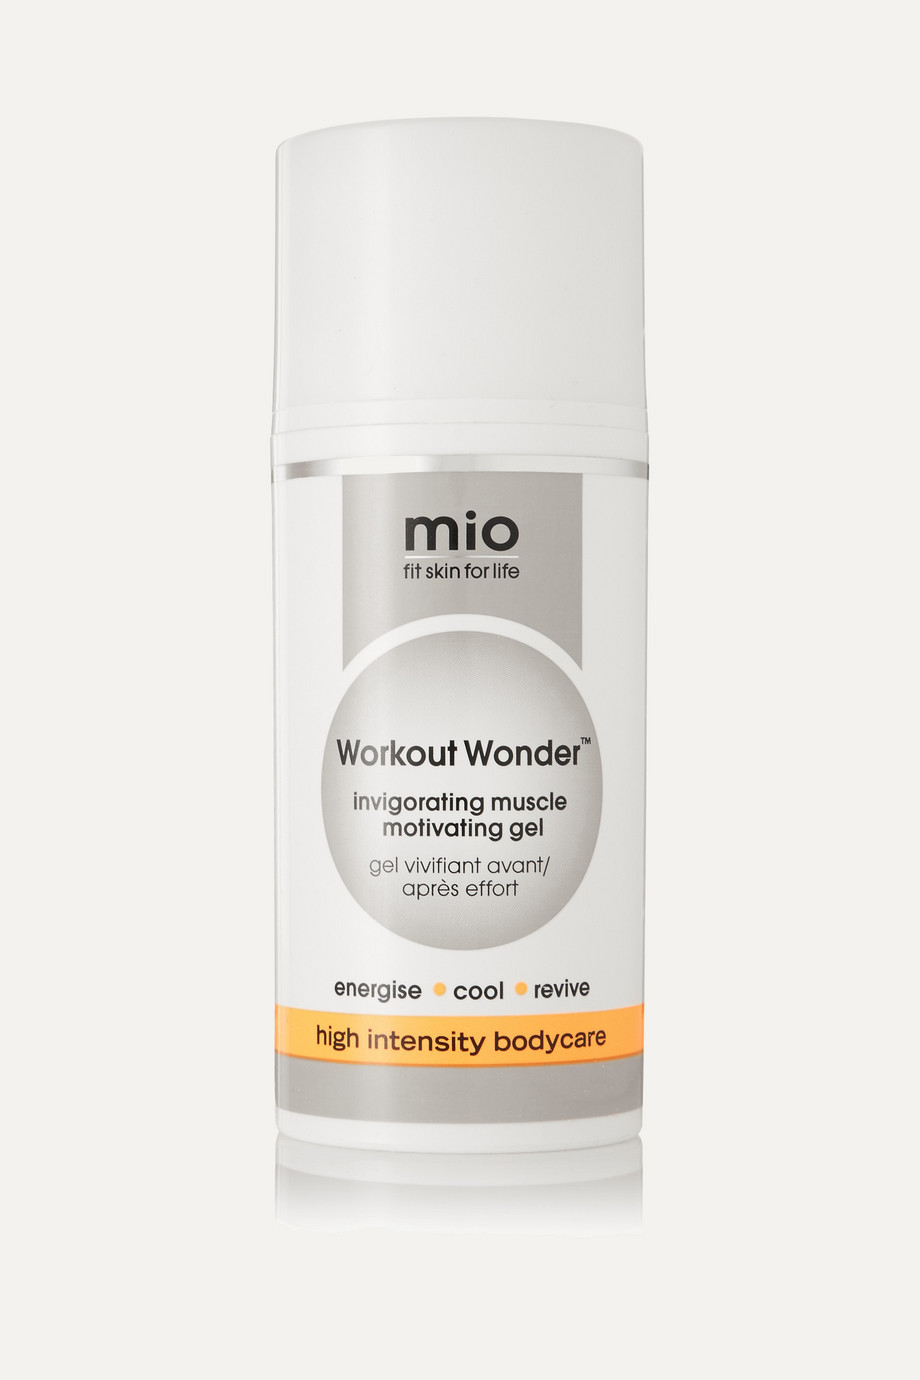 "Workout Wonderâ""¢ Invigorating Muscle Motivating Gel, 100ml, by Mio Skincare"